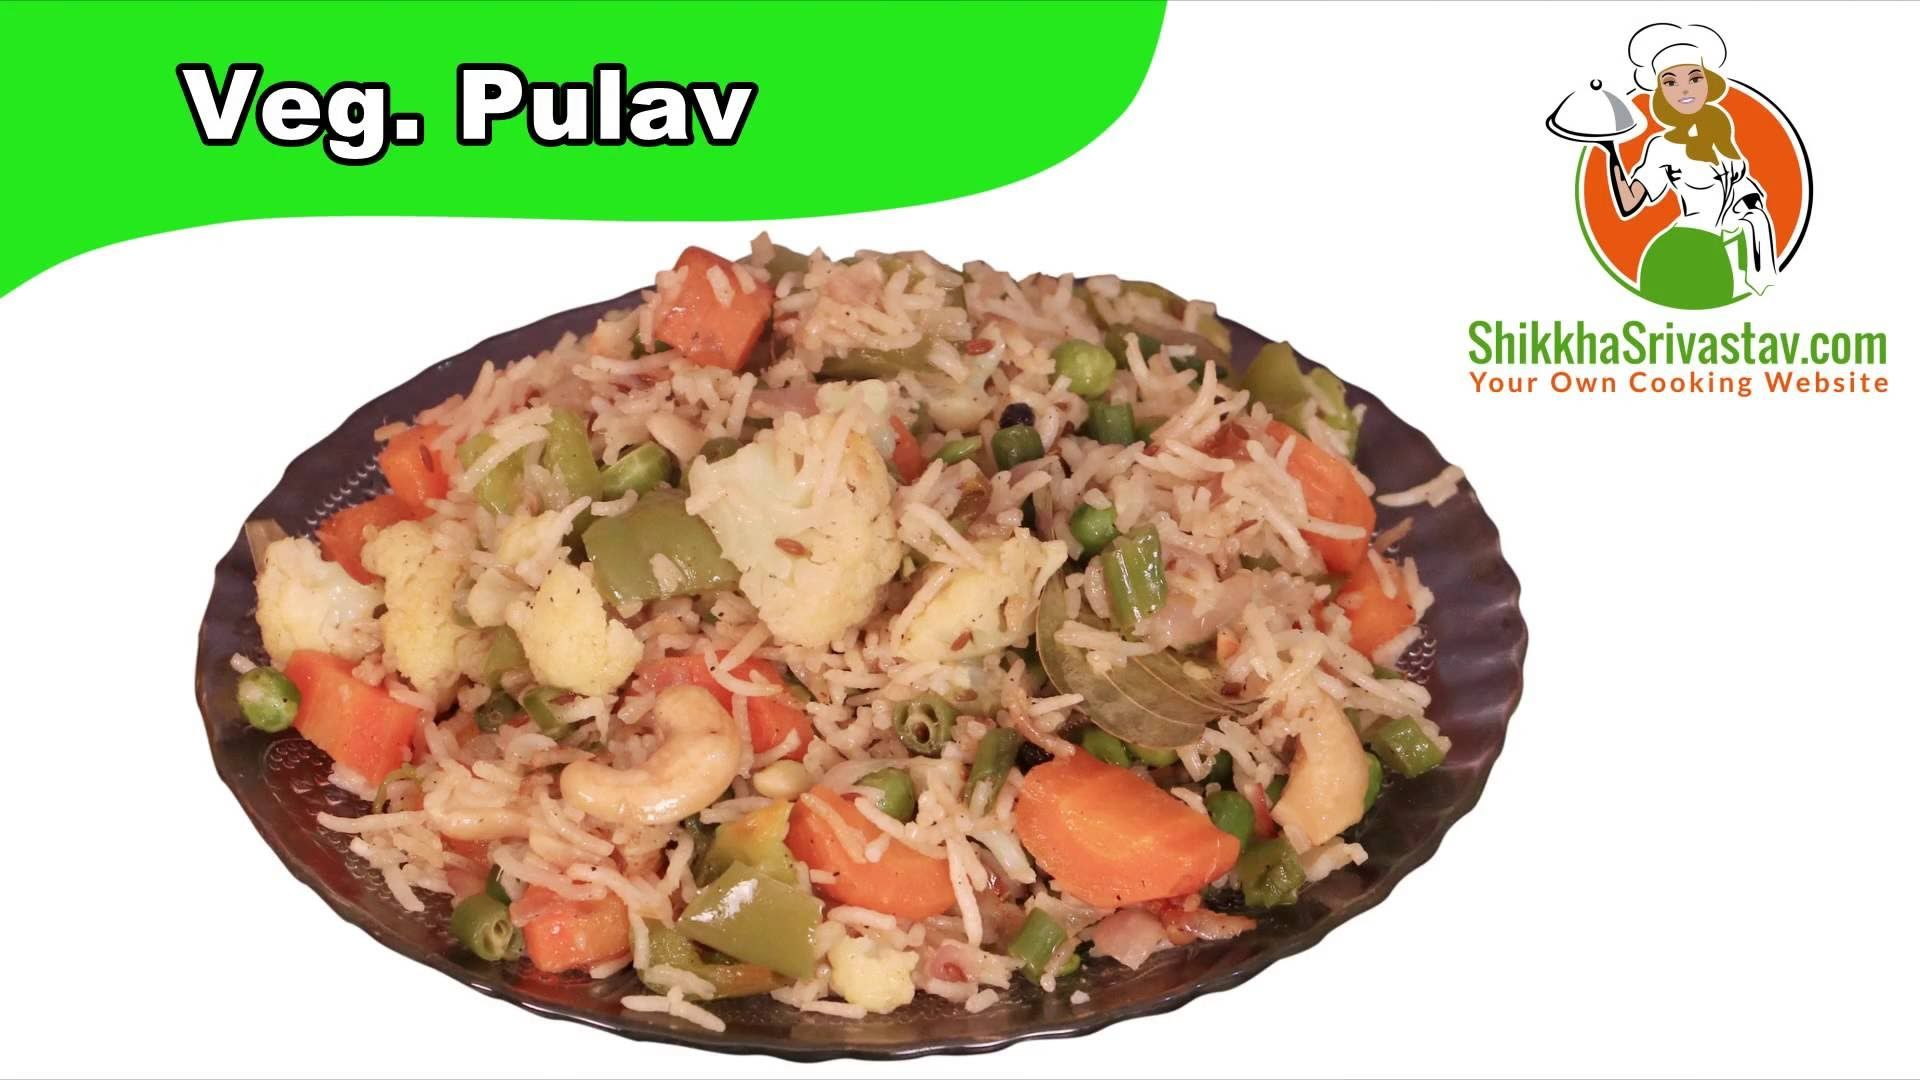 Veg pulao recipe in hindi how to make veg pulao at home in hindi indian veg pulao recipe in hindi how to make veg pulao at home in hindi video is stint with step by step guidedian vegetable pulao is famous all over forumfinder Choice Image